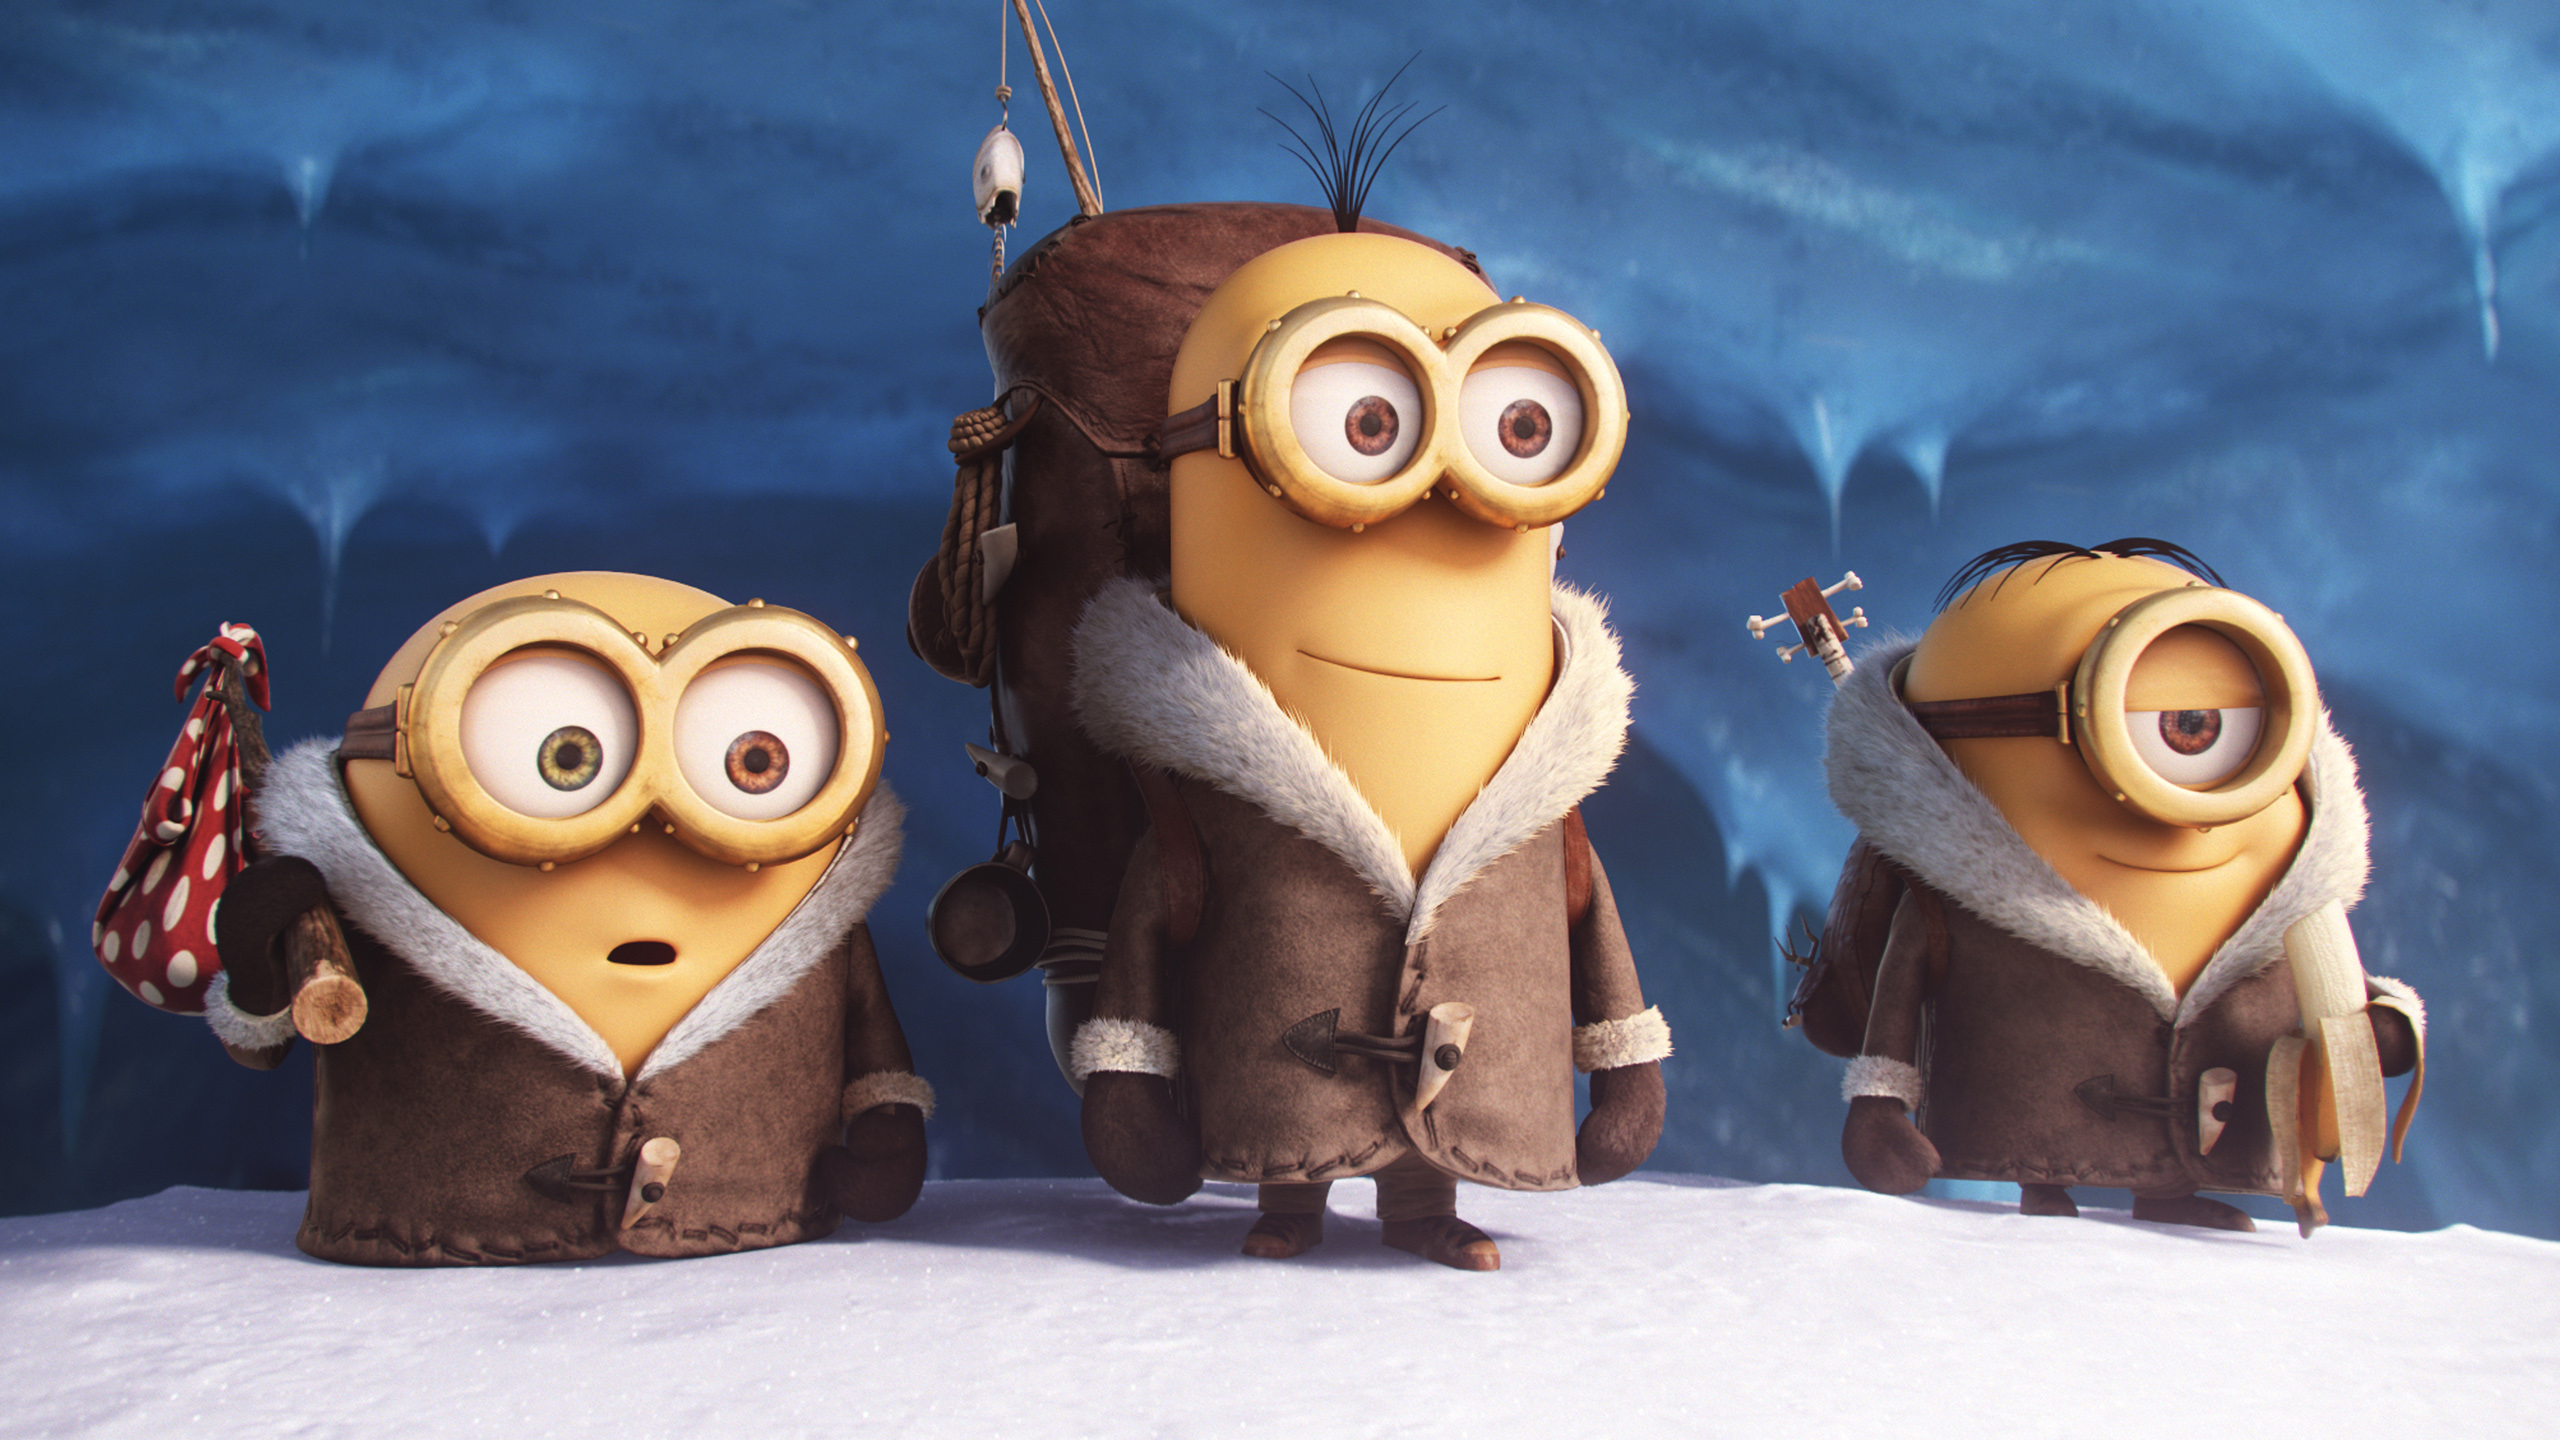 HD Wallpapers Snow Minions